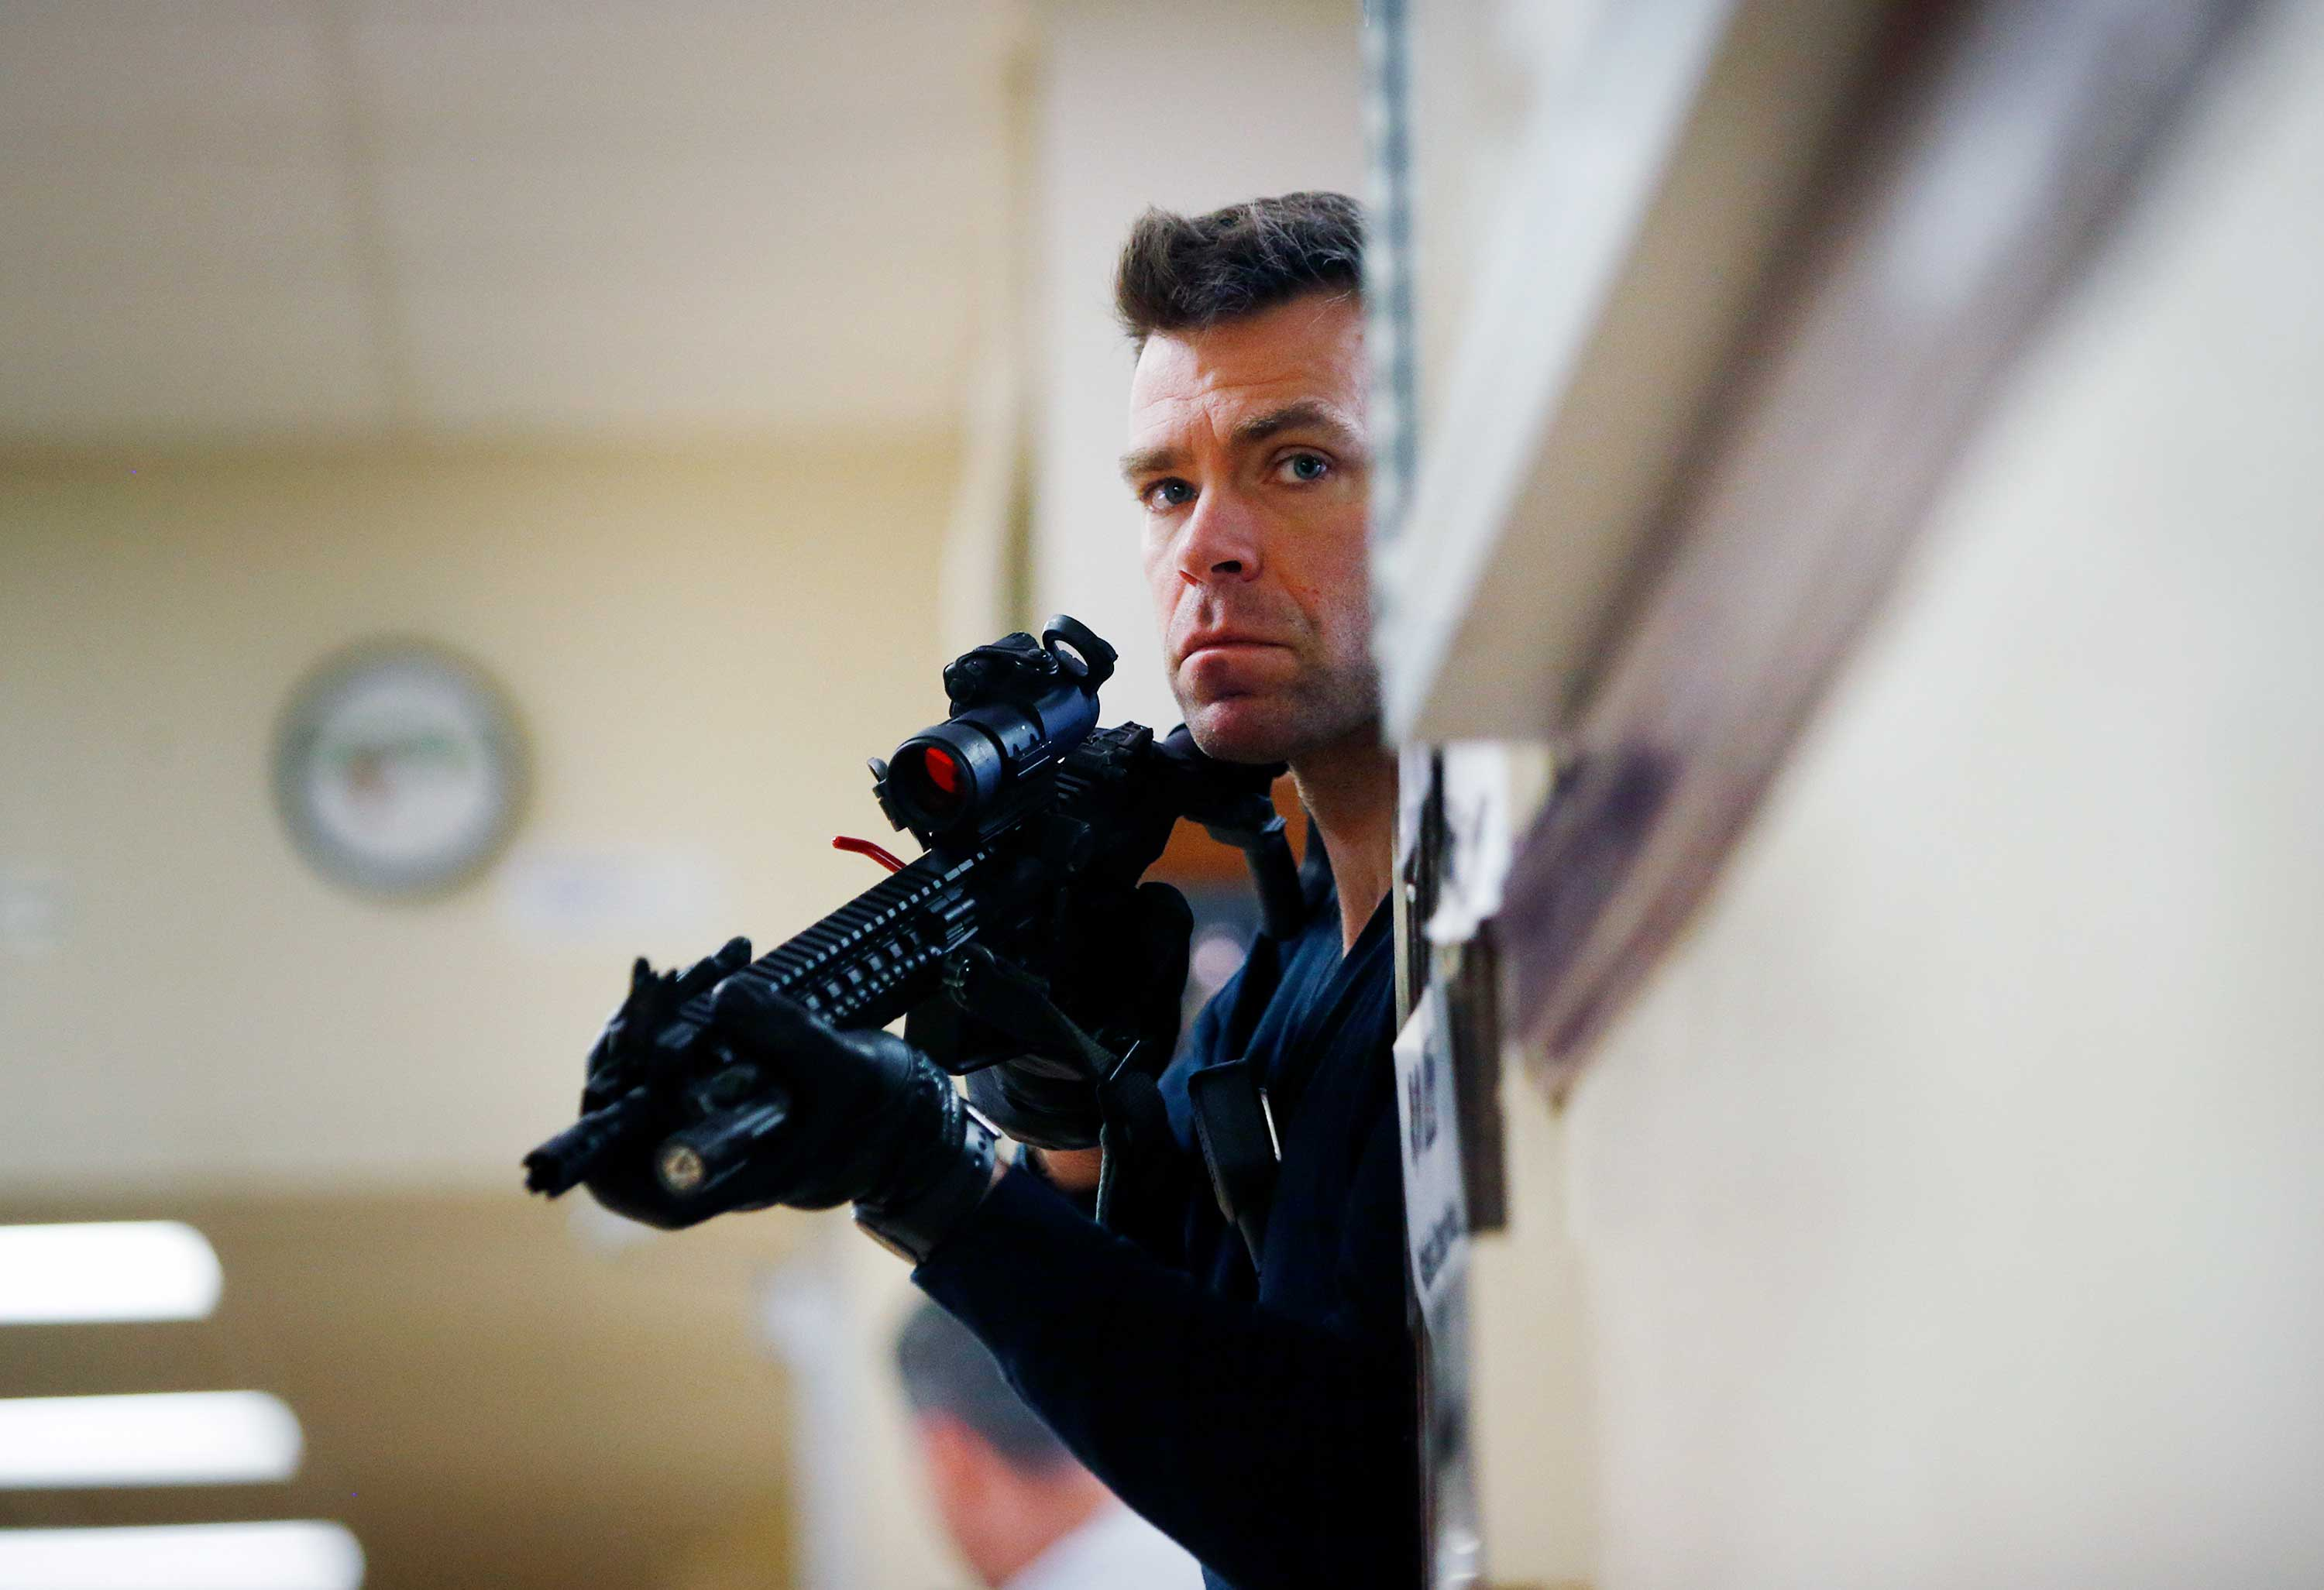 A law enforcement officer holding a gun secures a hallway during a regional active shooter training drill.